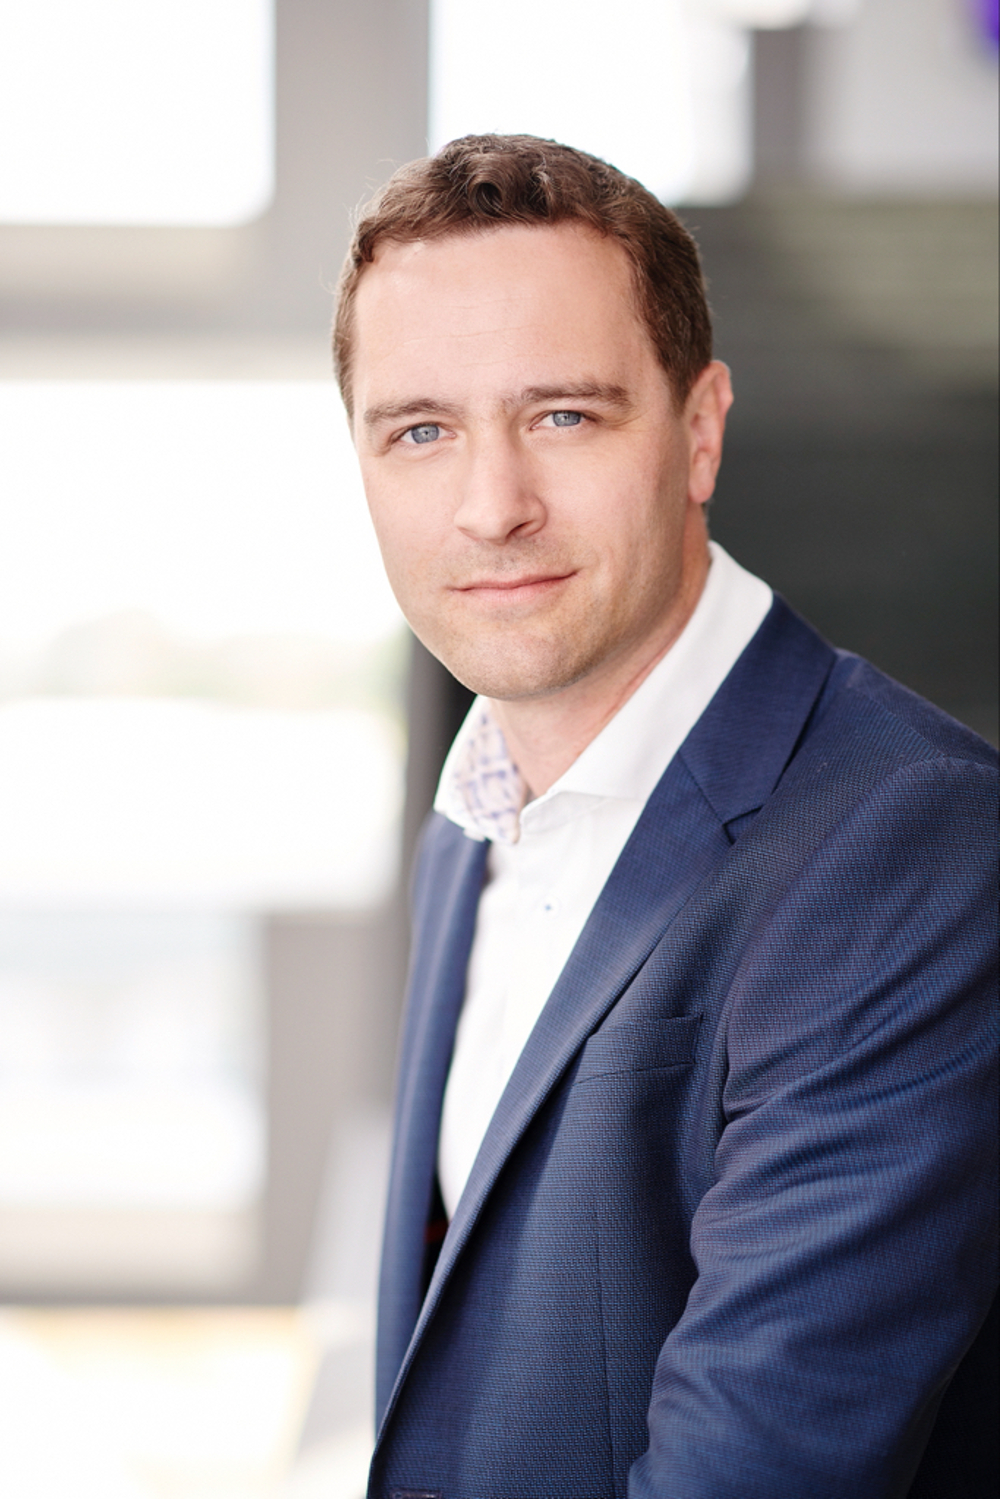 Christian Schenk appointed new Board Member for Finance and IT at SKODA AUTO as of 1 October - Image 1